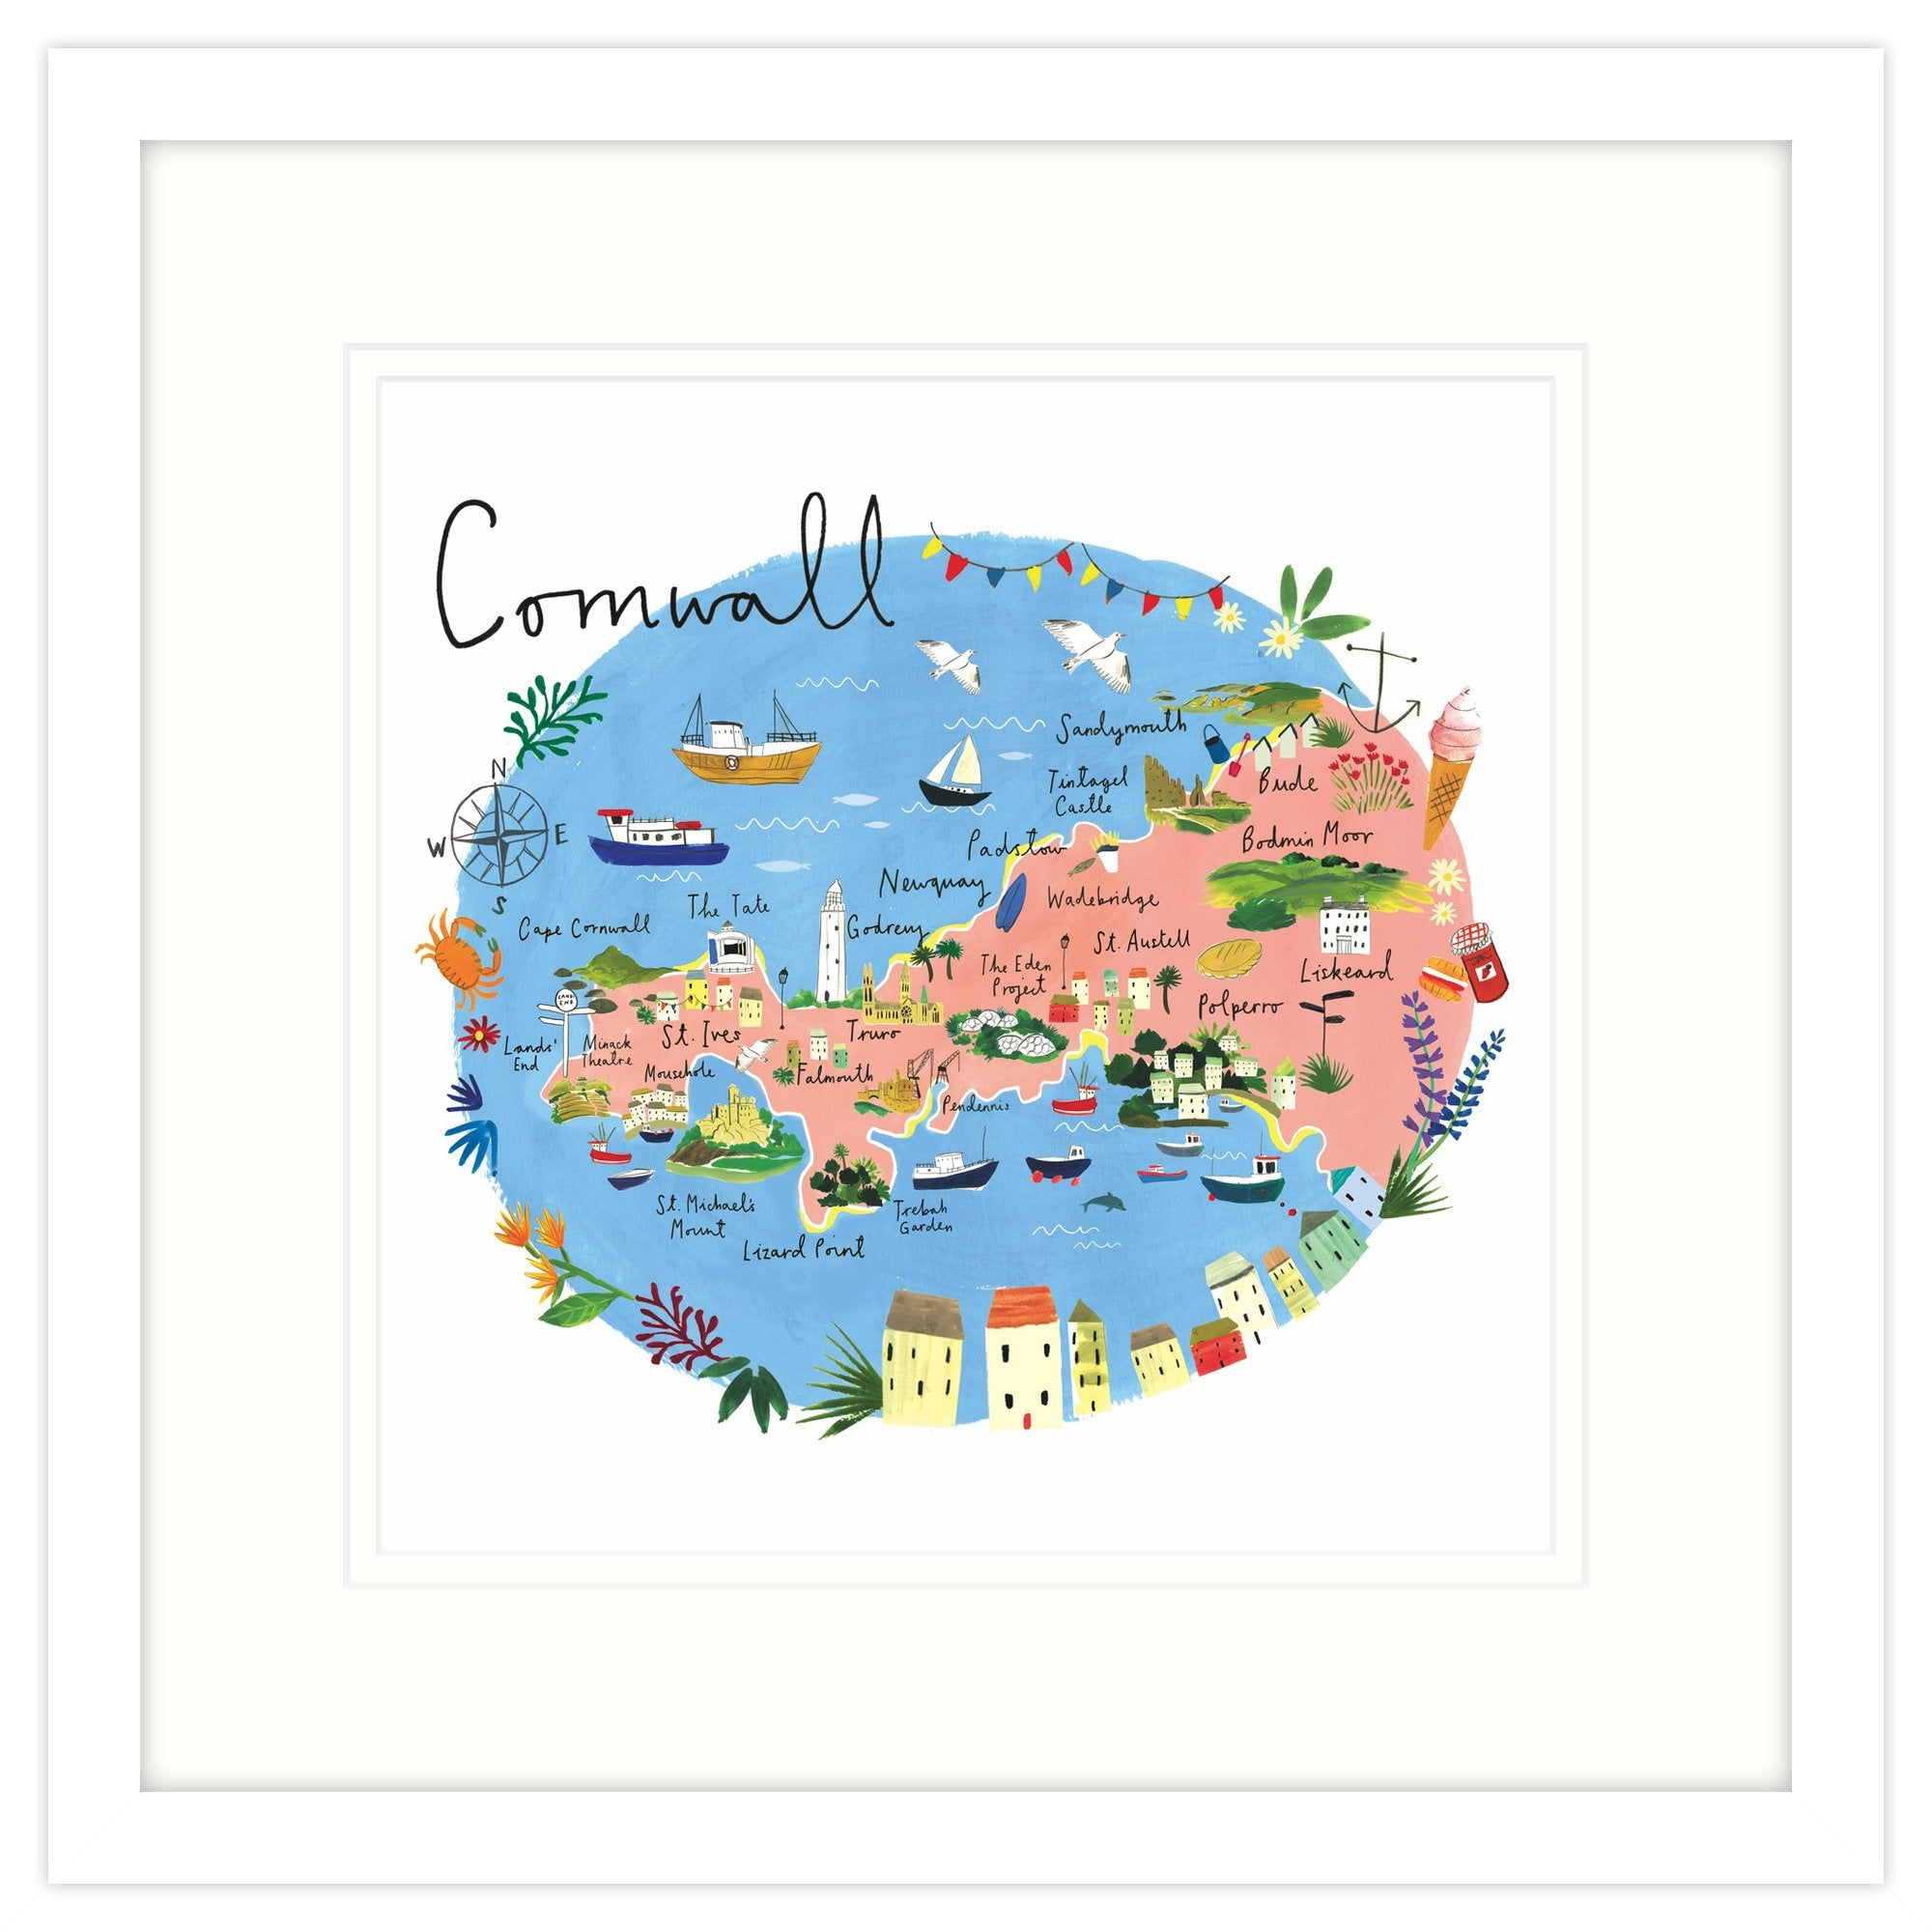 Cornwall Map Framed Print on wales map, stonehenge map, monroe woodbury map, isle of wight map, st. catharines map, stuyvesant map, dorsetshire map, england map, eden project map, united kingdom map, derbyshire map, scotland map, ontario highway 401 map, wychwood map, western highlands map, devon map, quebec map, rondout valley map, carlisle map, orkney islands map,